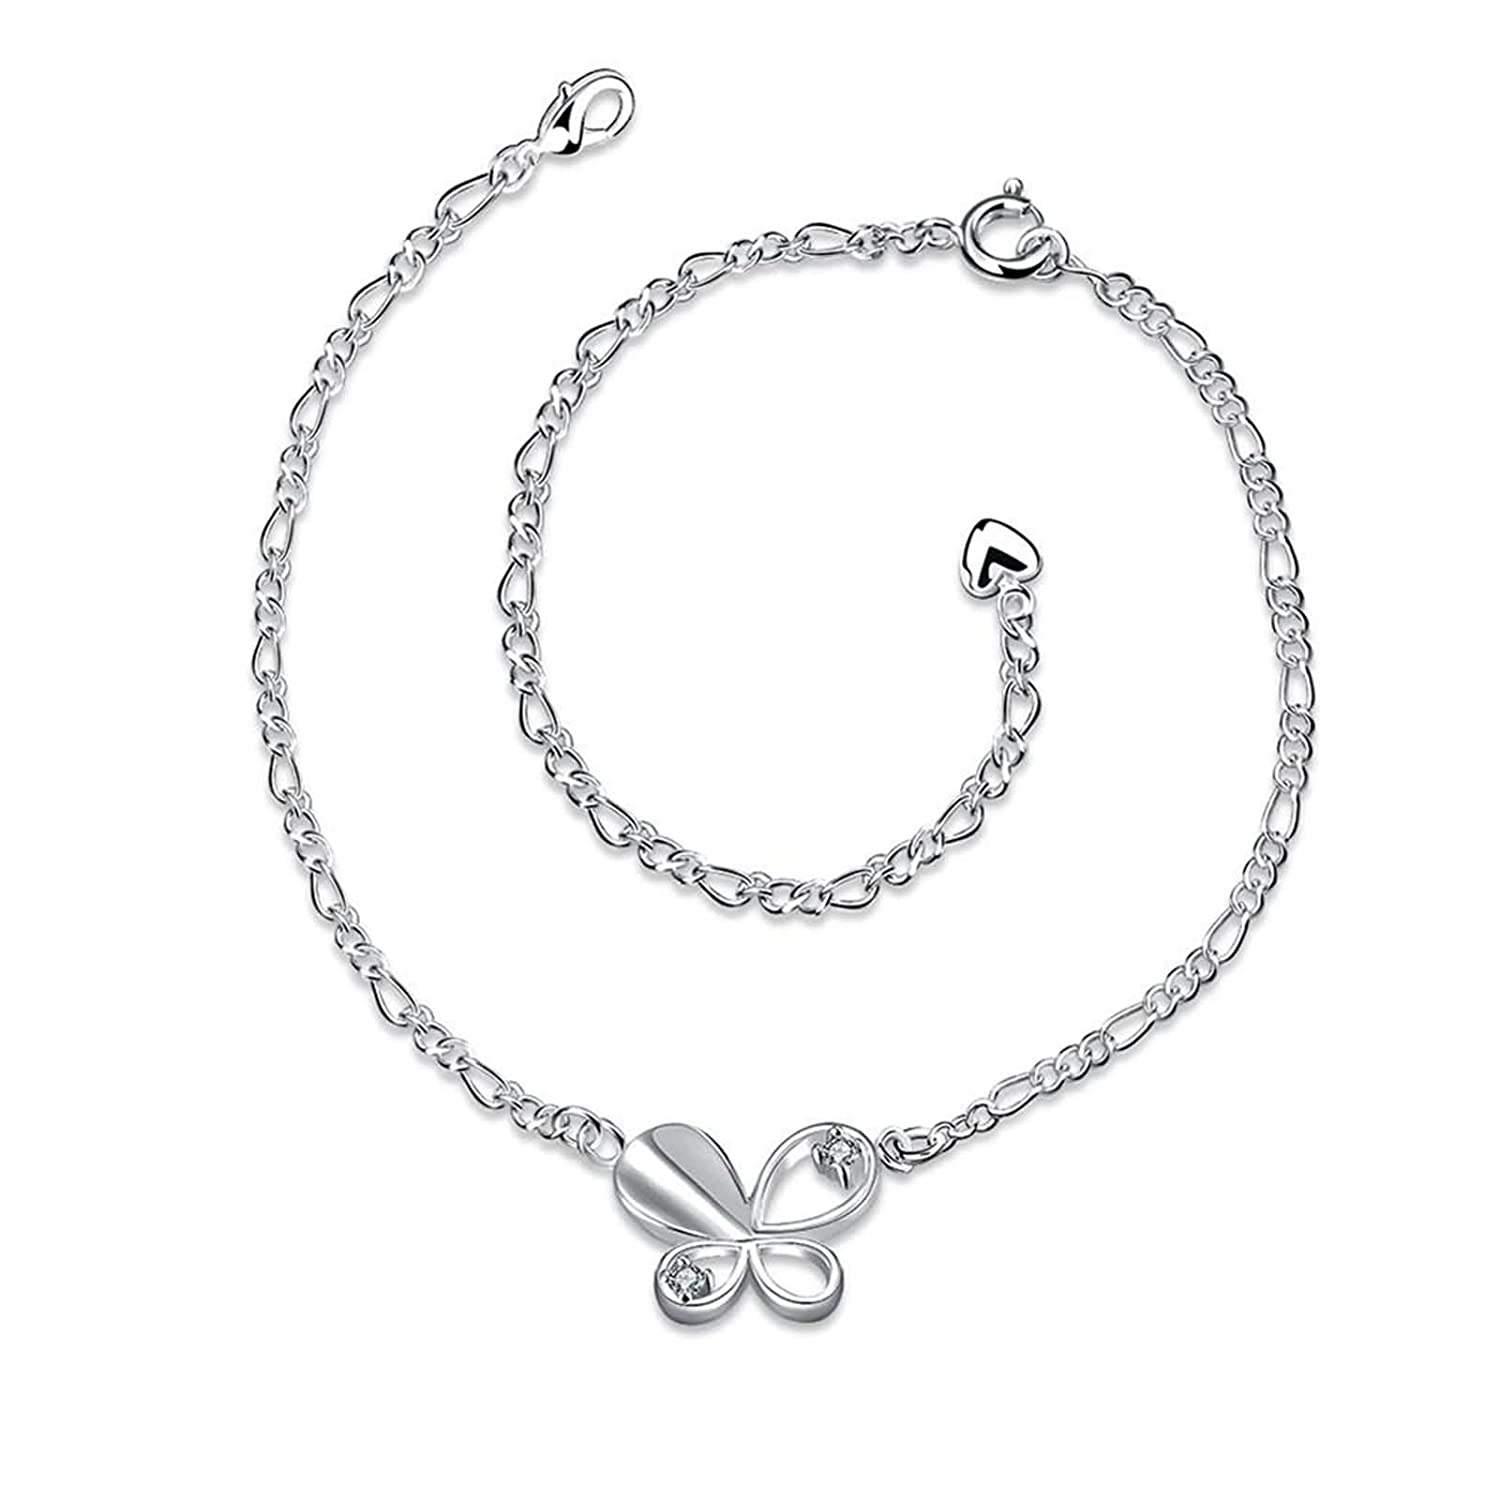 Epinki Anklet for Women Silver Ankle Bracelet Beach Jewelry Anklets Gold Plated Butterfly Anklet